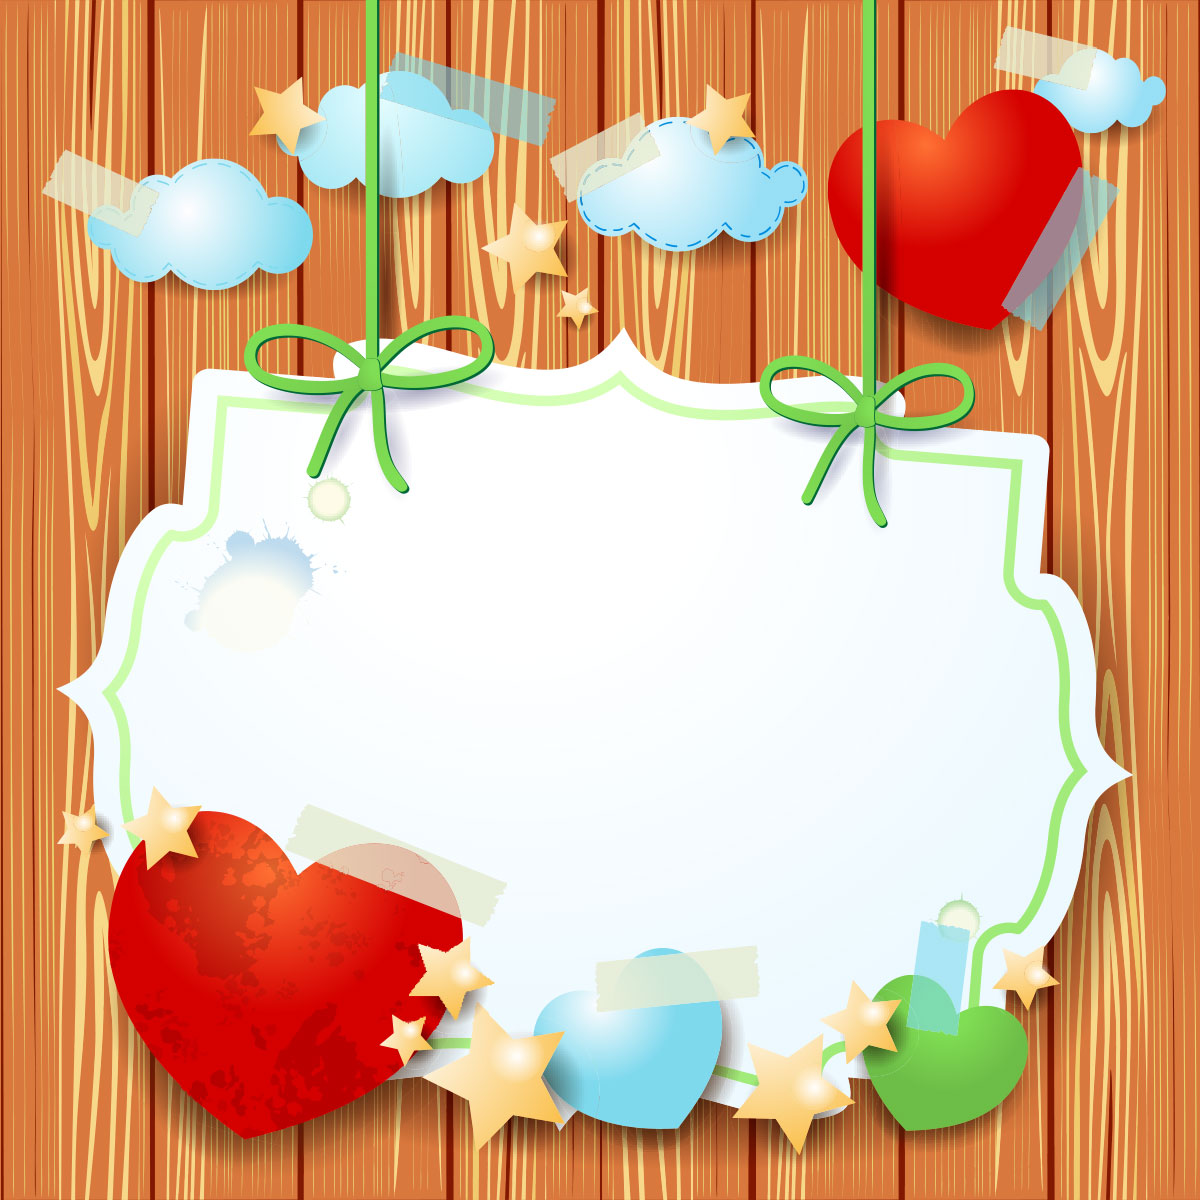 artclipart.ru - photo #11